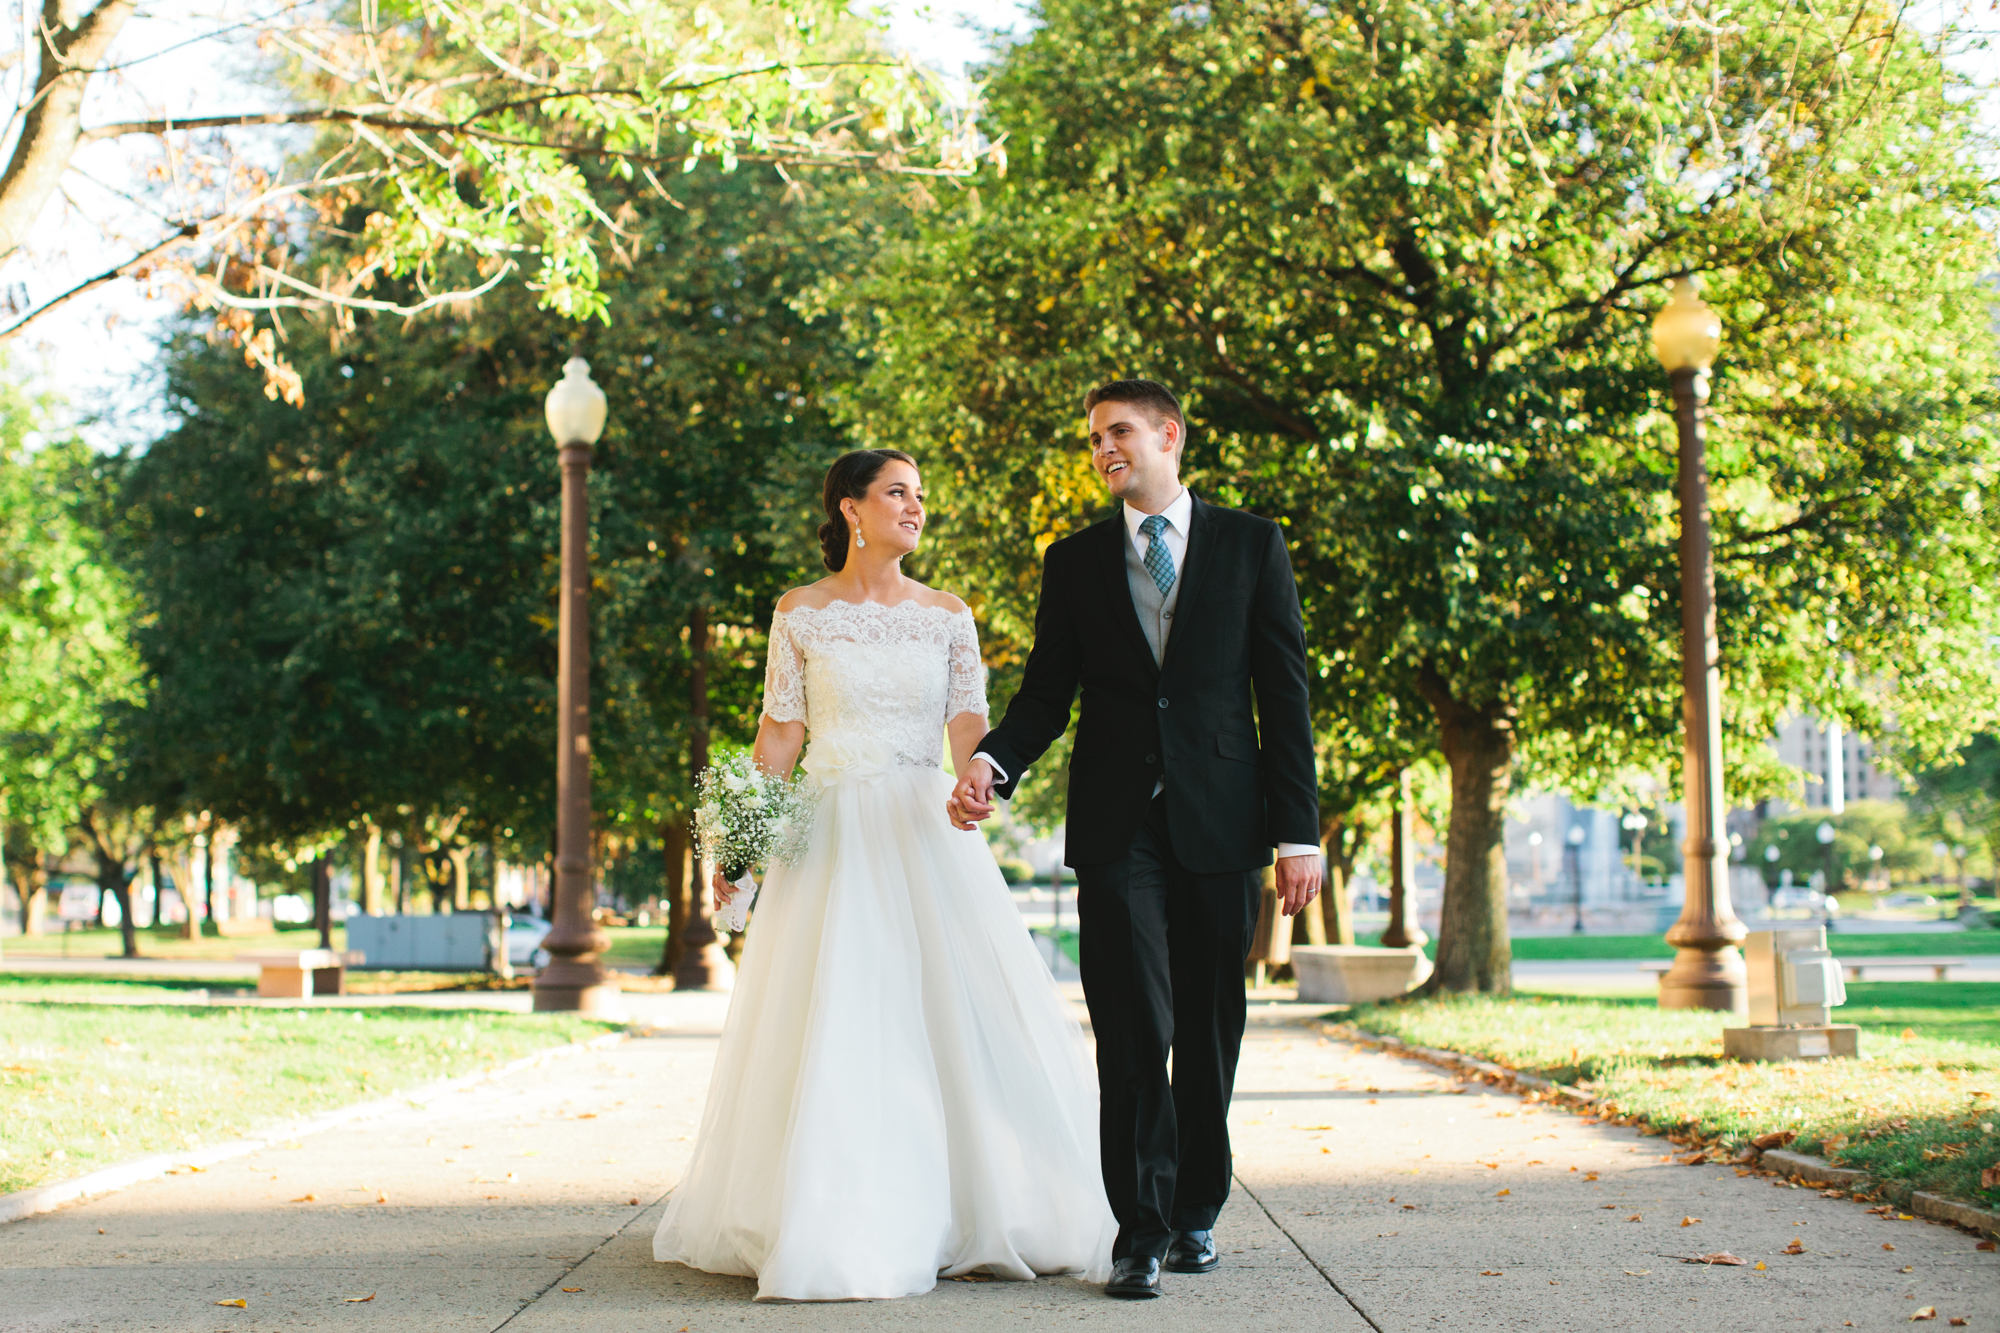 Davey & Kaylee Wed (646 of 983).jpg